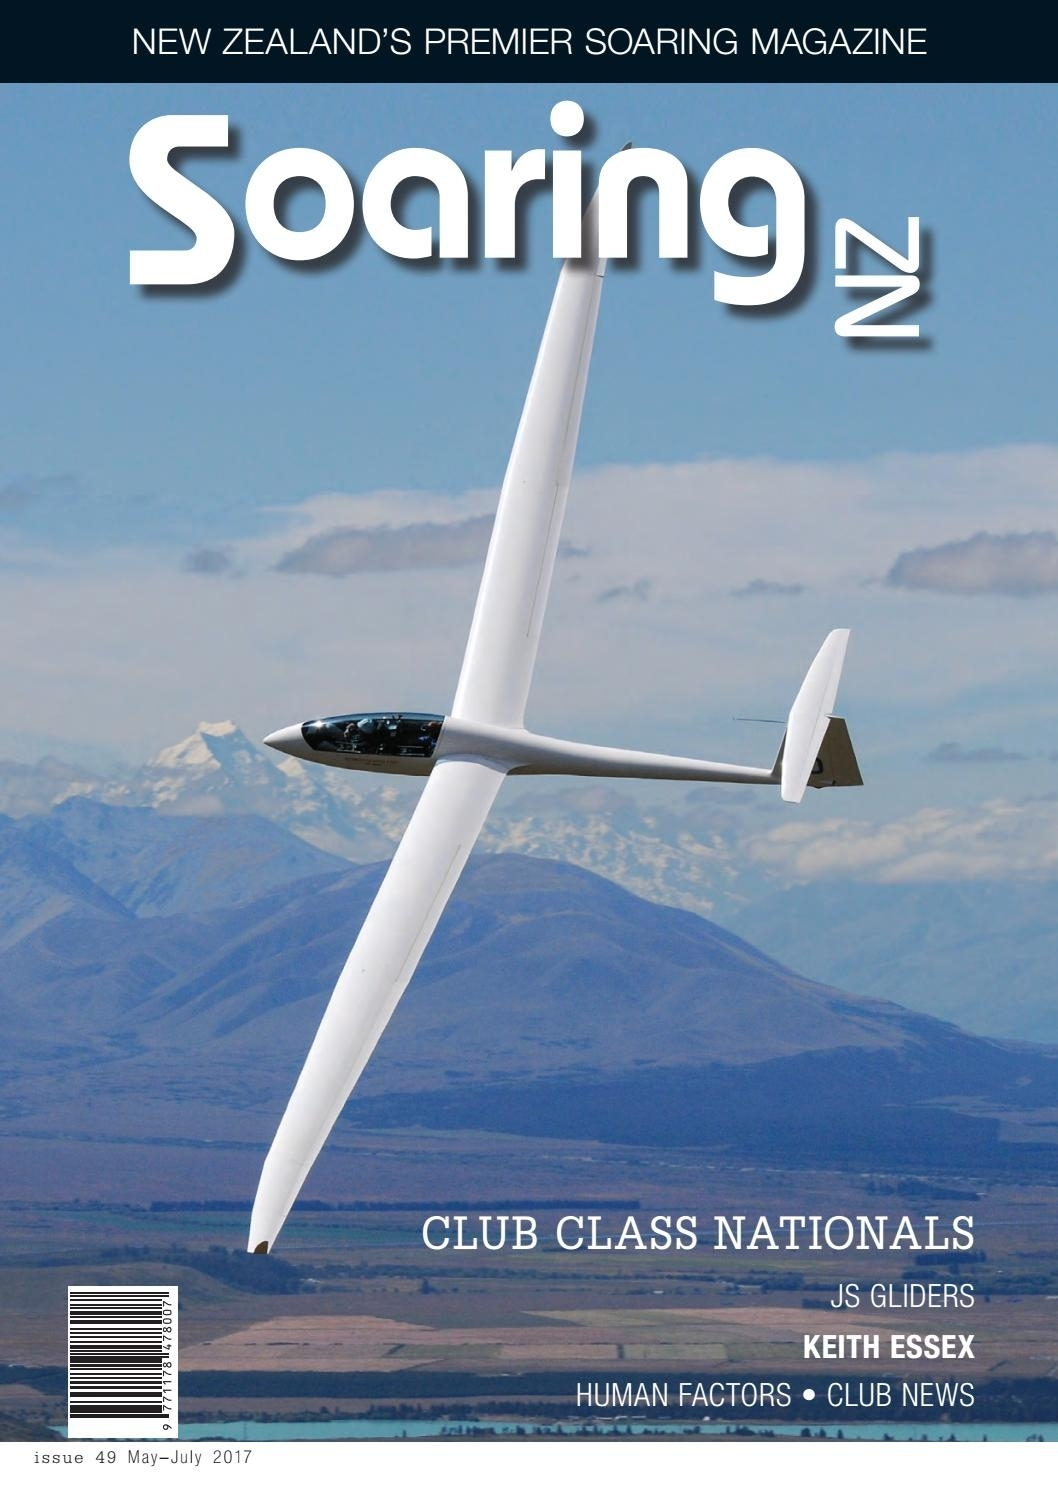 Soaringnz Issue 49 By Mccawmedia - Issuu